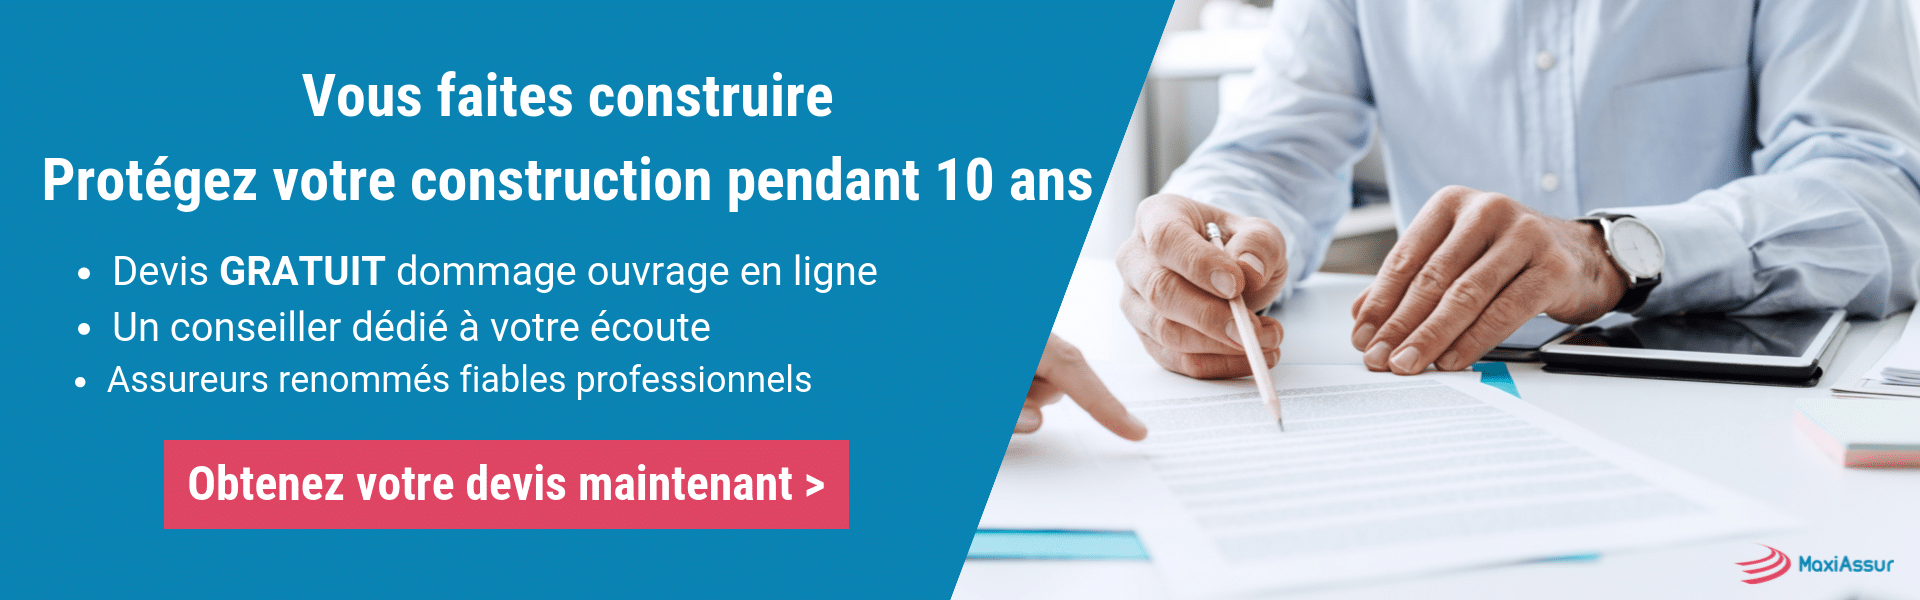 100 000 contrats d'assurance construction non couverts